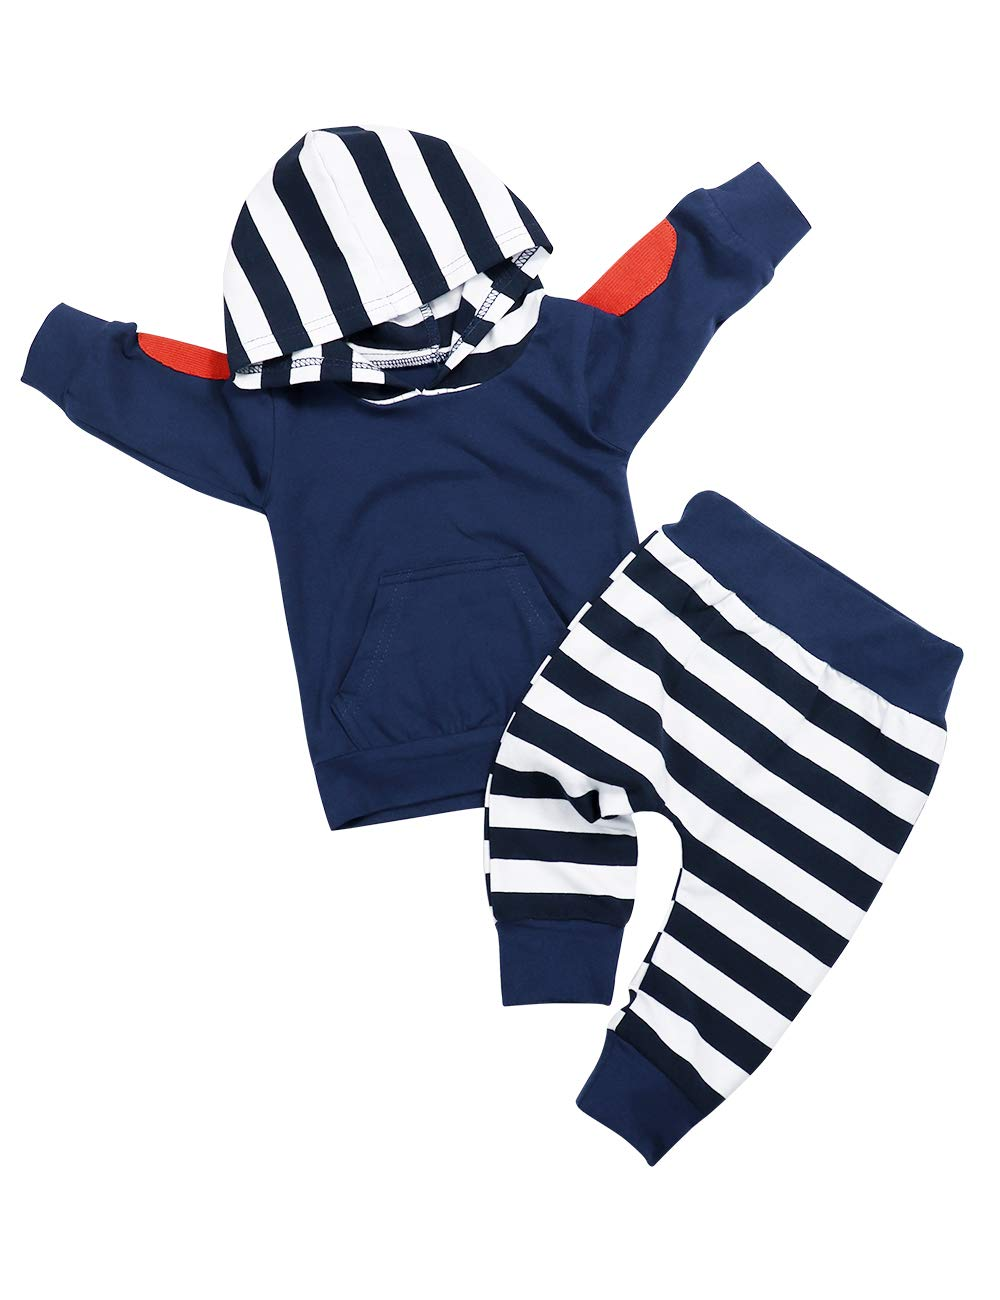 Toddler Infant Baby Boys Girls Clothes Long Sleeve Hoodie Sweatshirt Top + Striped Pants Outfits Set